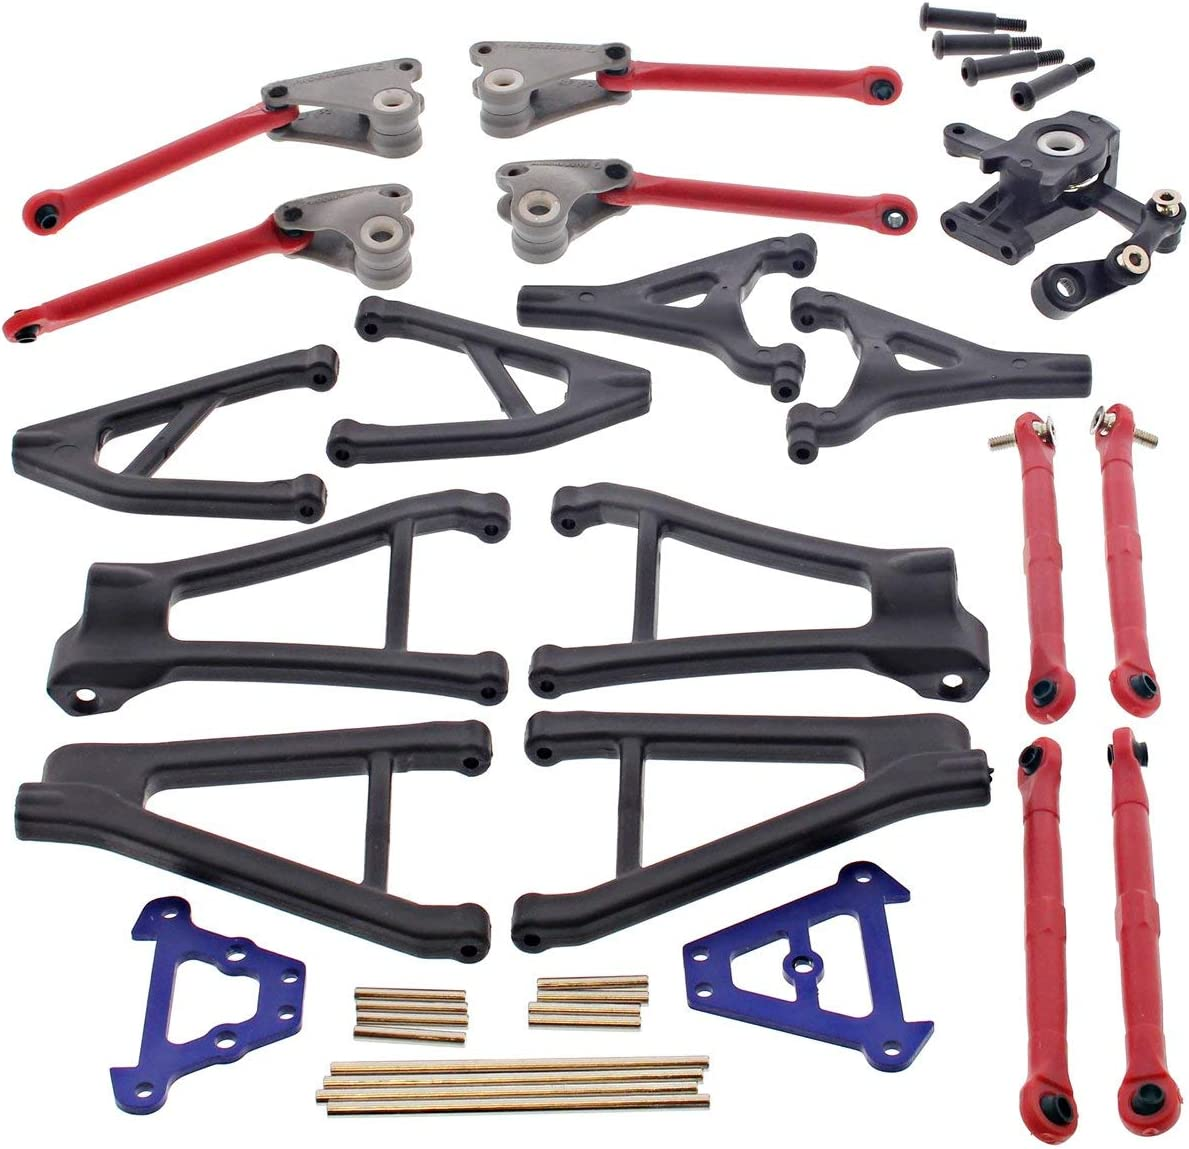 Traxxas 1/16 Mini Slash 4x4 SUSPENSION ARMS PINS & TURNBUCKLES SERVO SAVER 71gYOaHhXJL